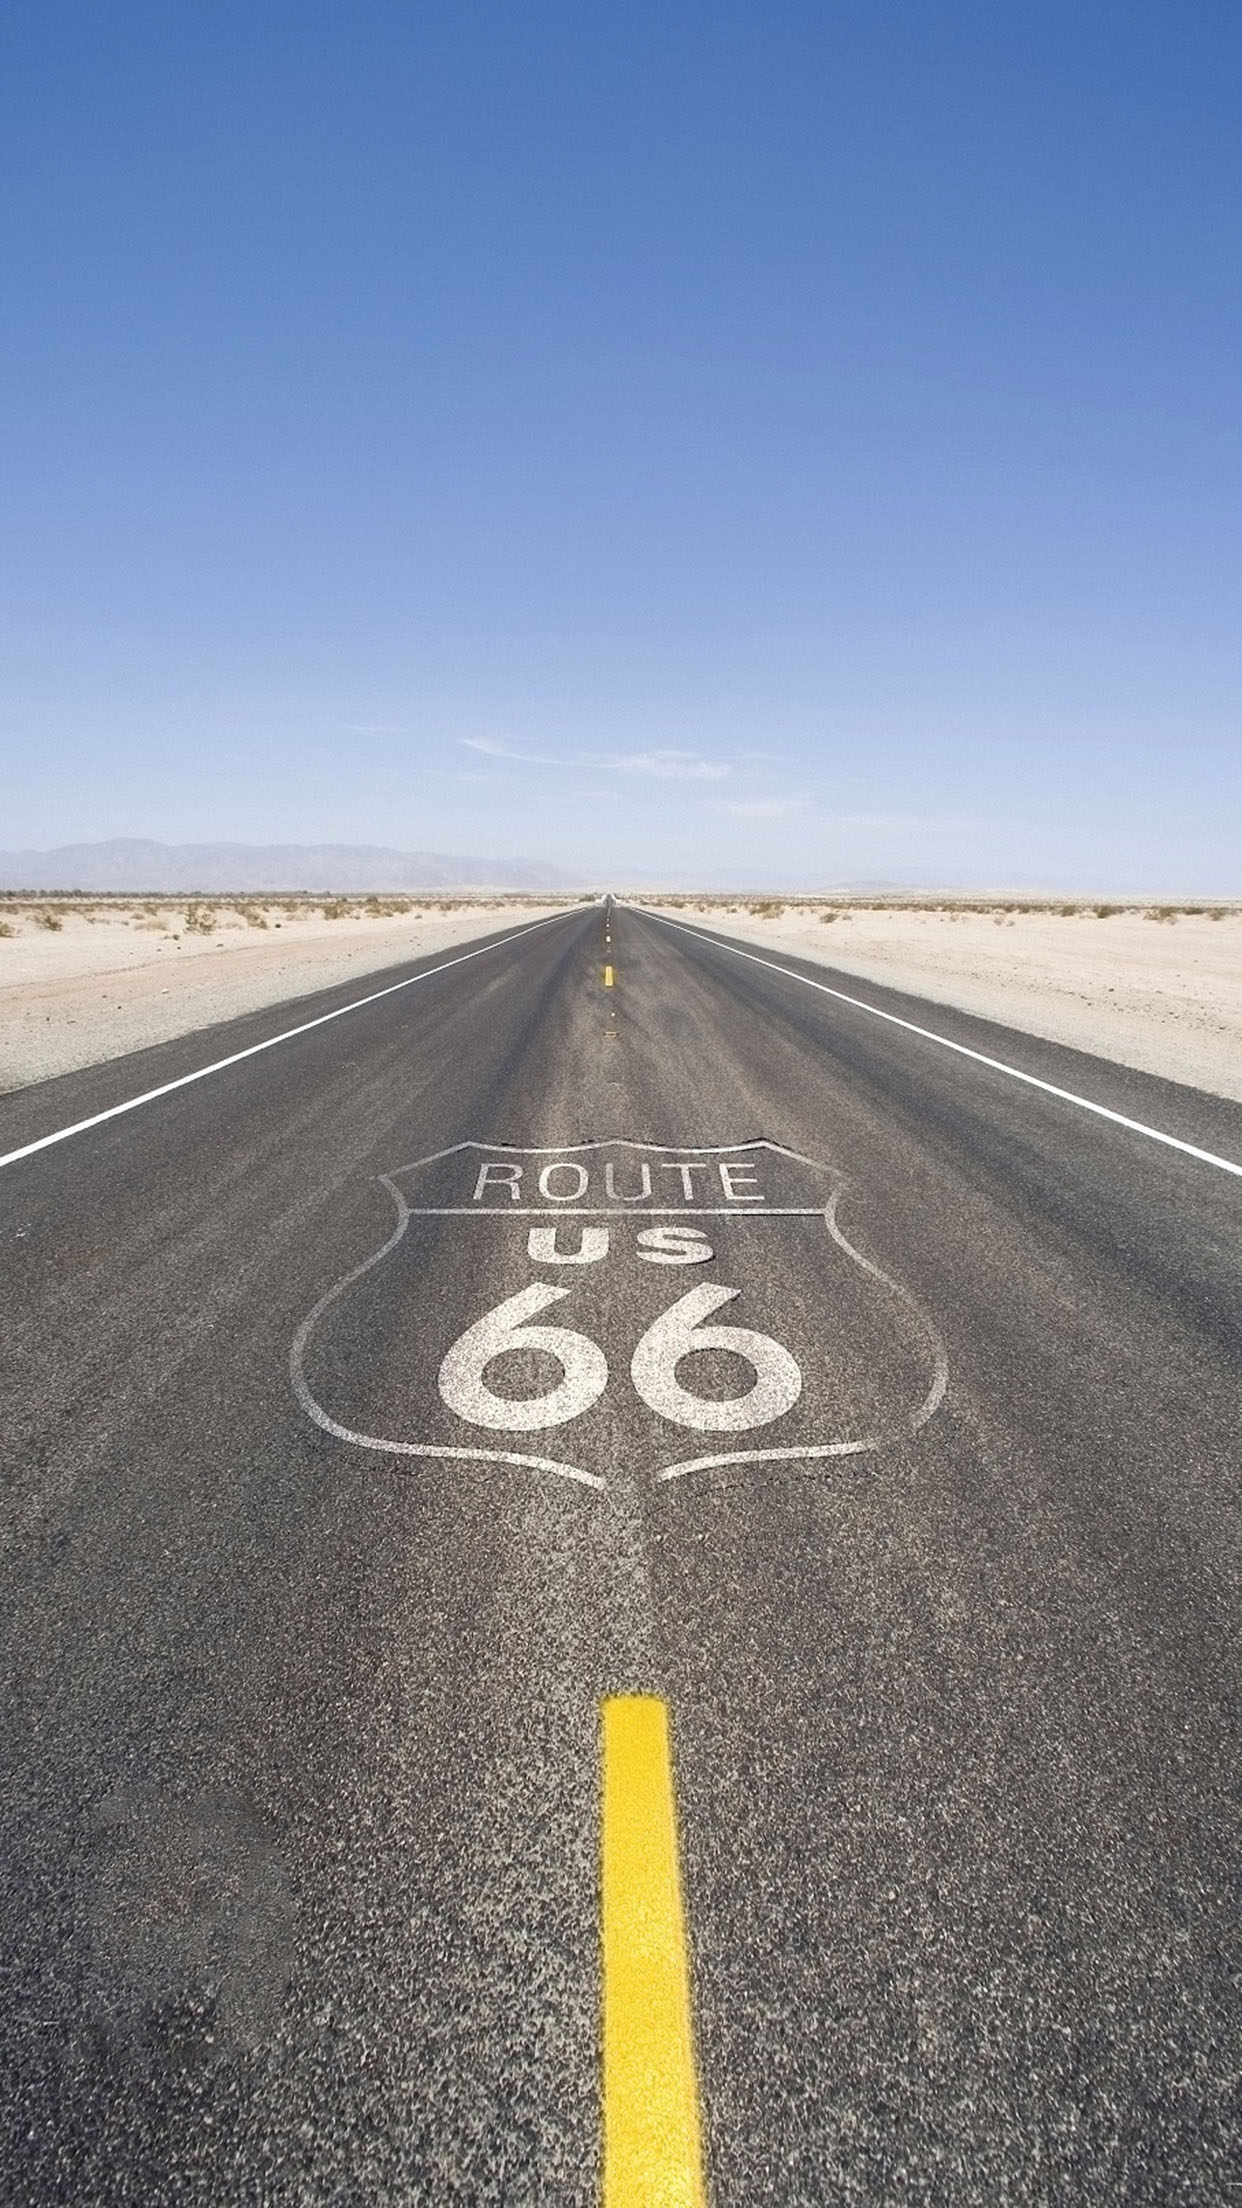 Iphone X Parallax Wallpaper Route 66 3 Wallpaper For Iphone X 8 7 6 Free